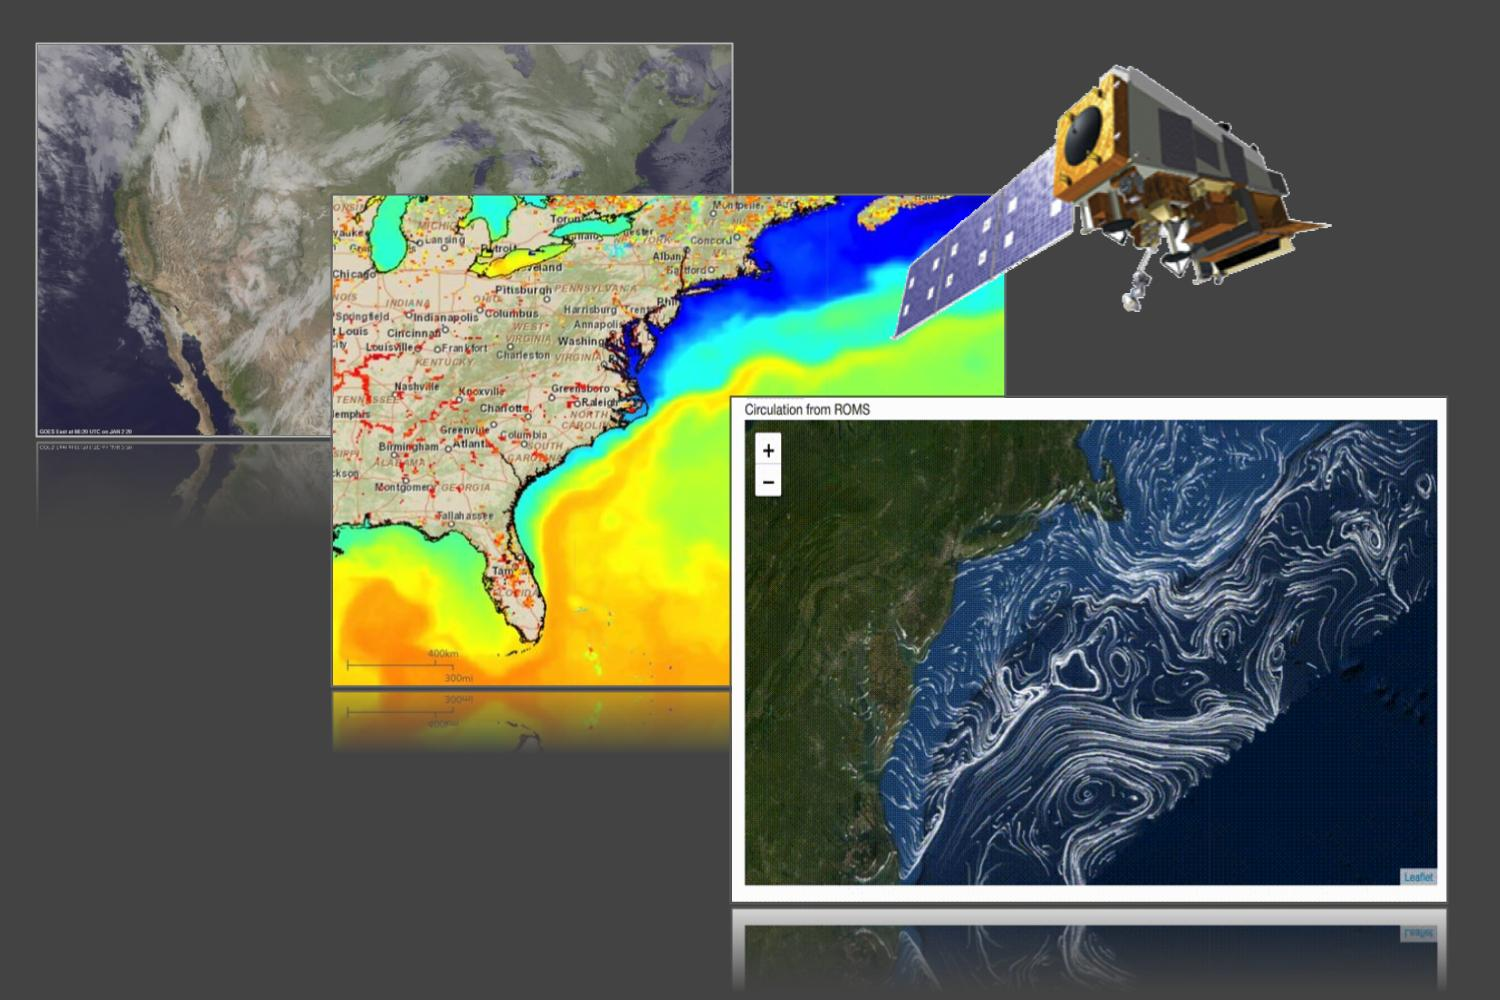 image shows three panels. The panel on the left shows a satellite cloud cover image of the United States. The center panel shows a colorful sea surface temperature map of the east coast with a weather satellite imposed over the corner of the map. The third panel shows moving white vector lines of current patterns off the East Coast.